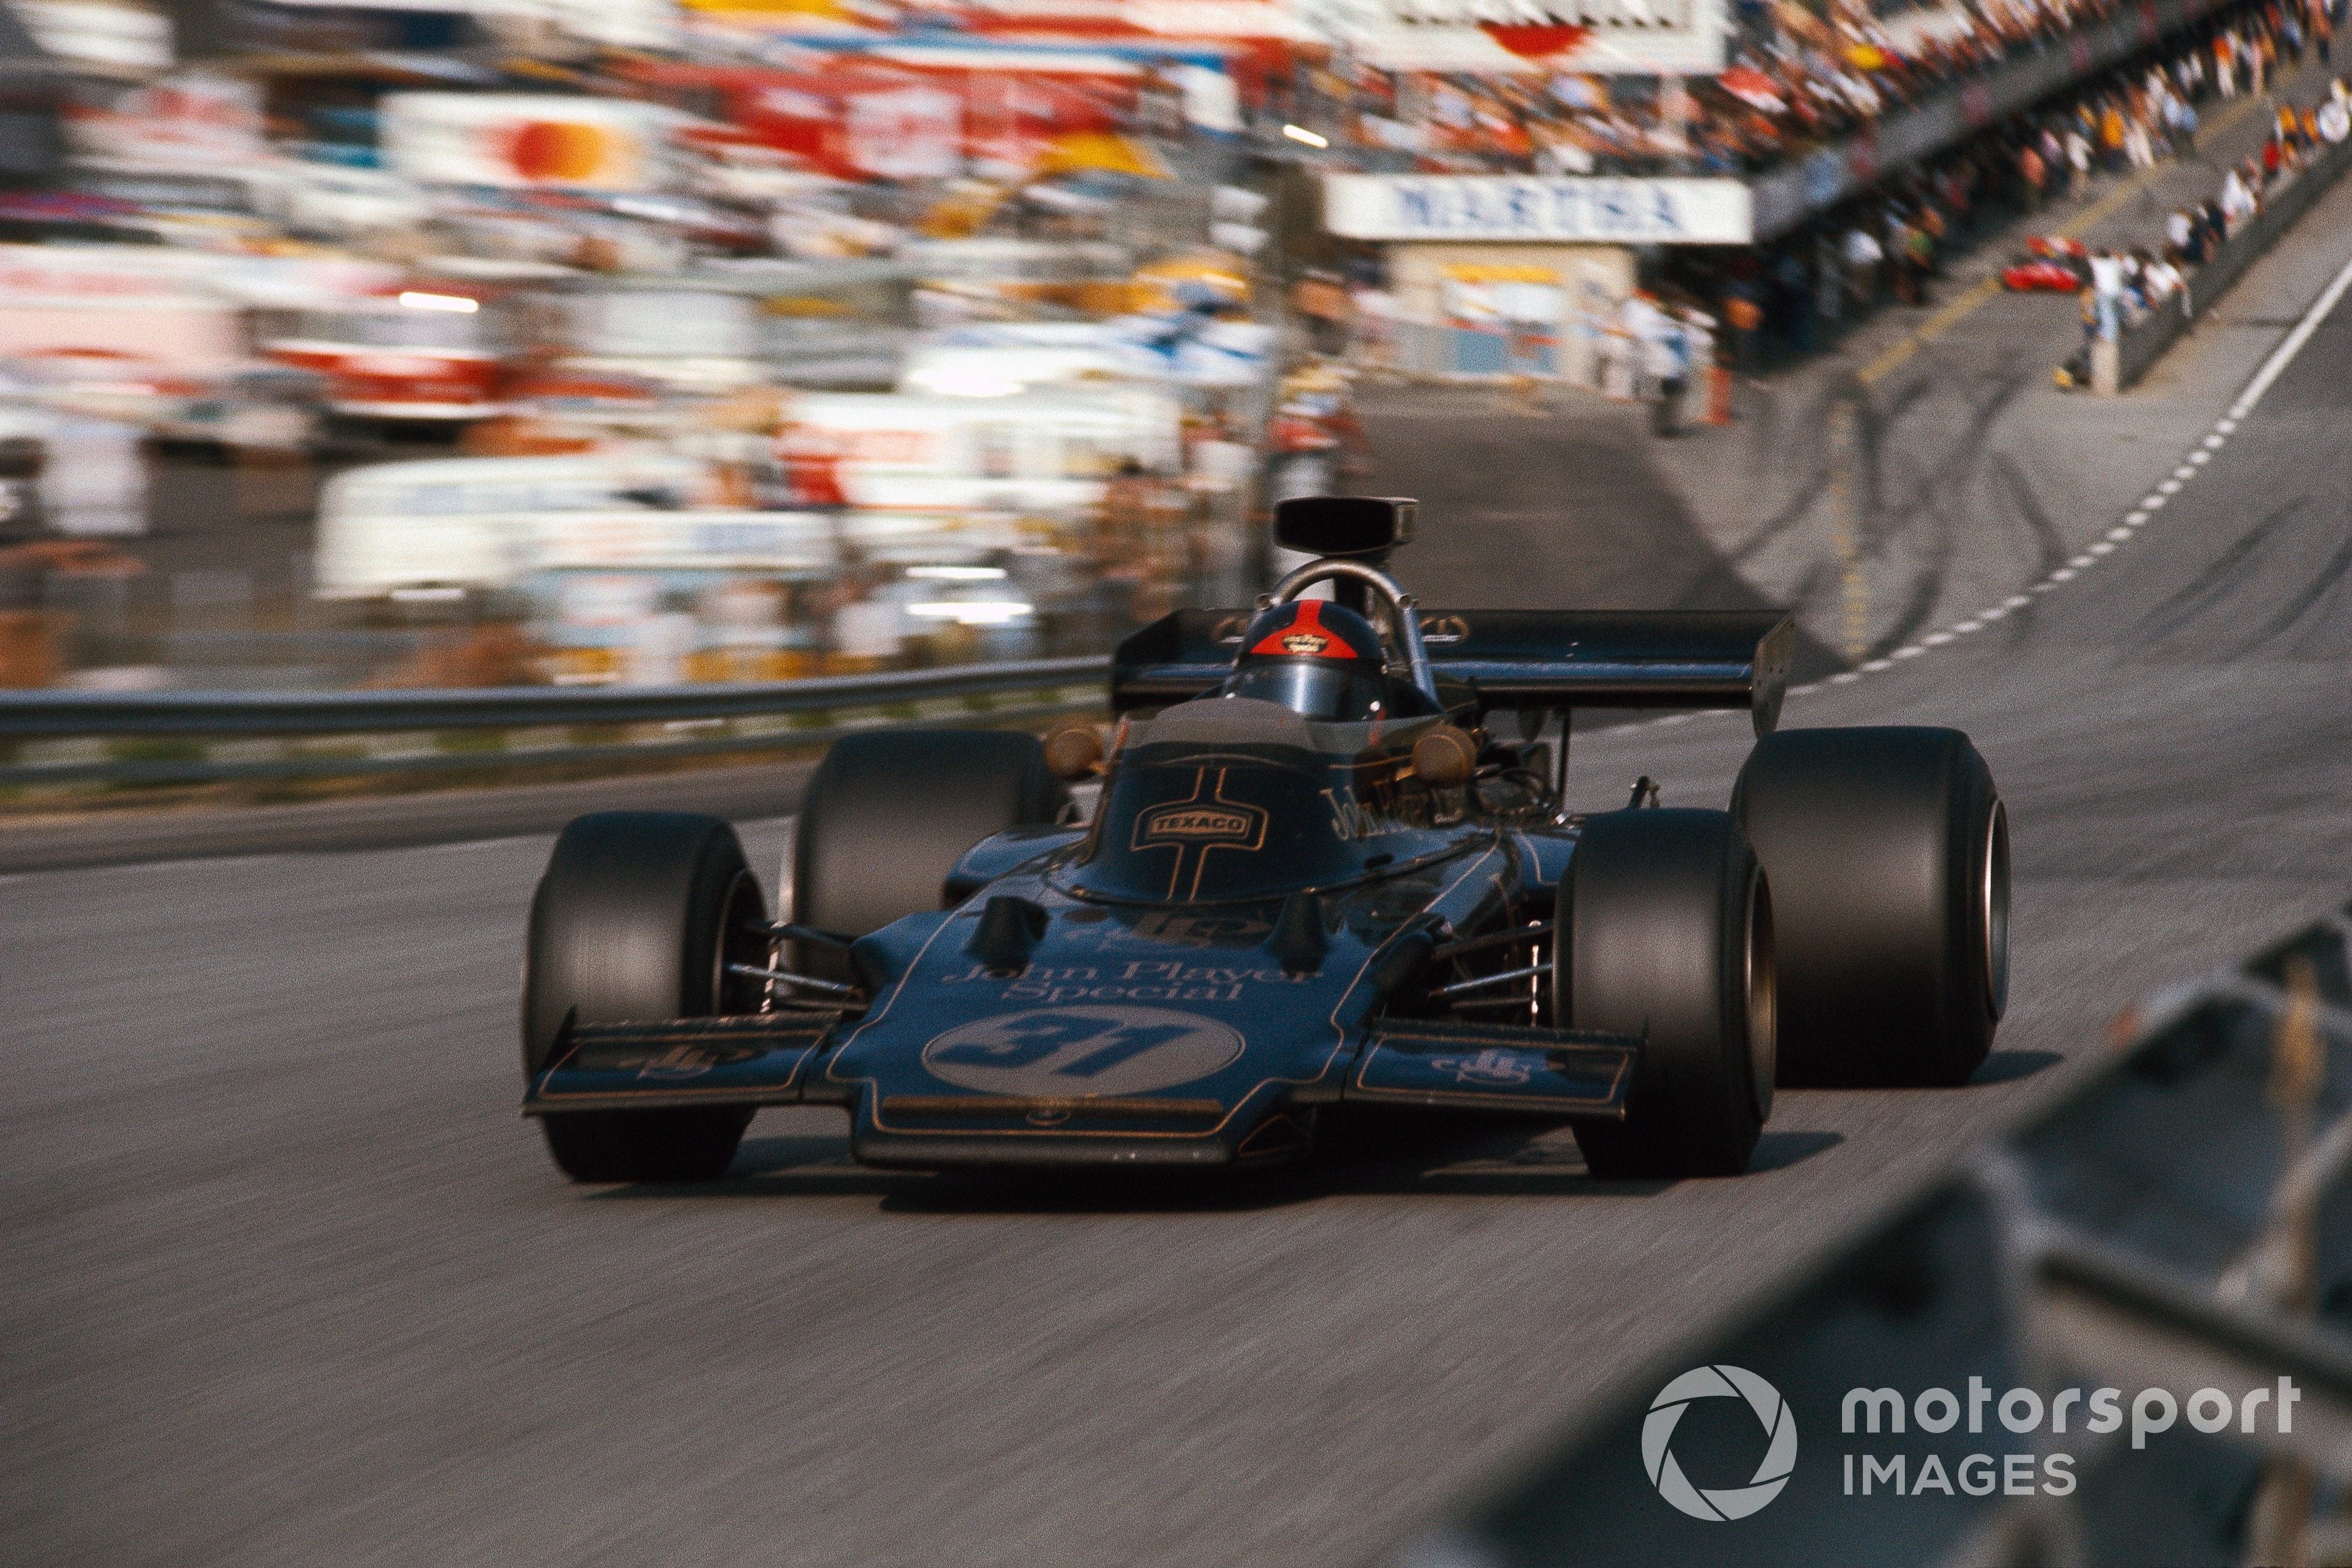 Emerson Fittipaldi in the Lotus-Ford 72D at the 1972 Austrian GP